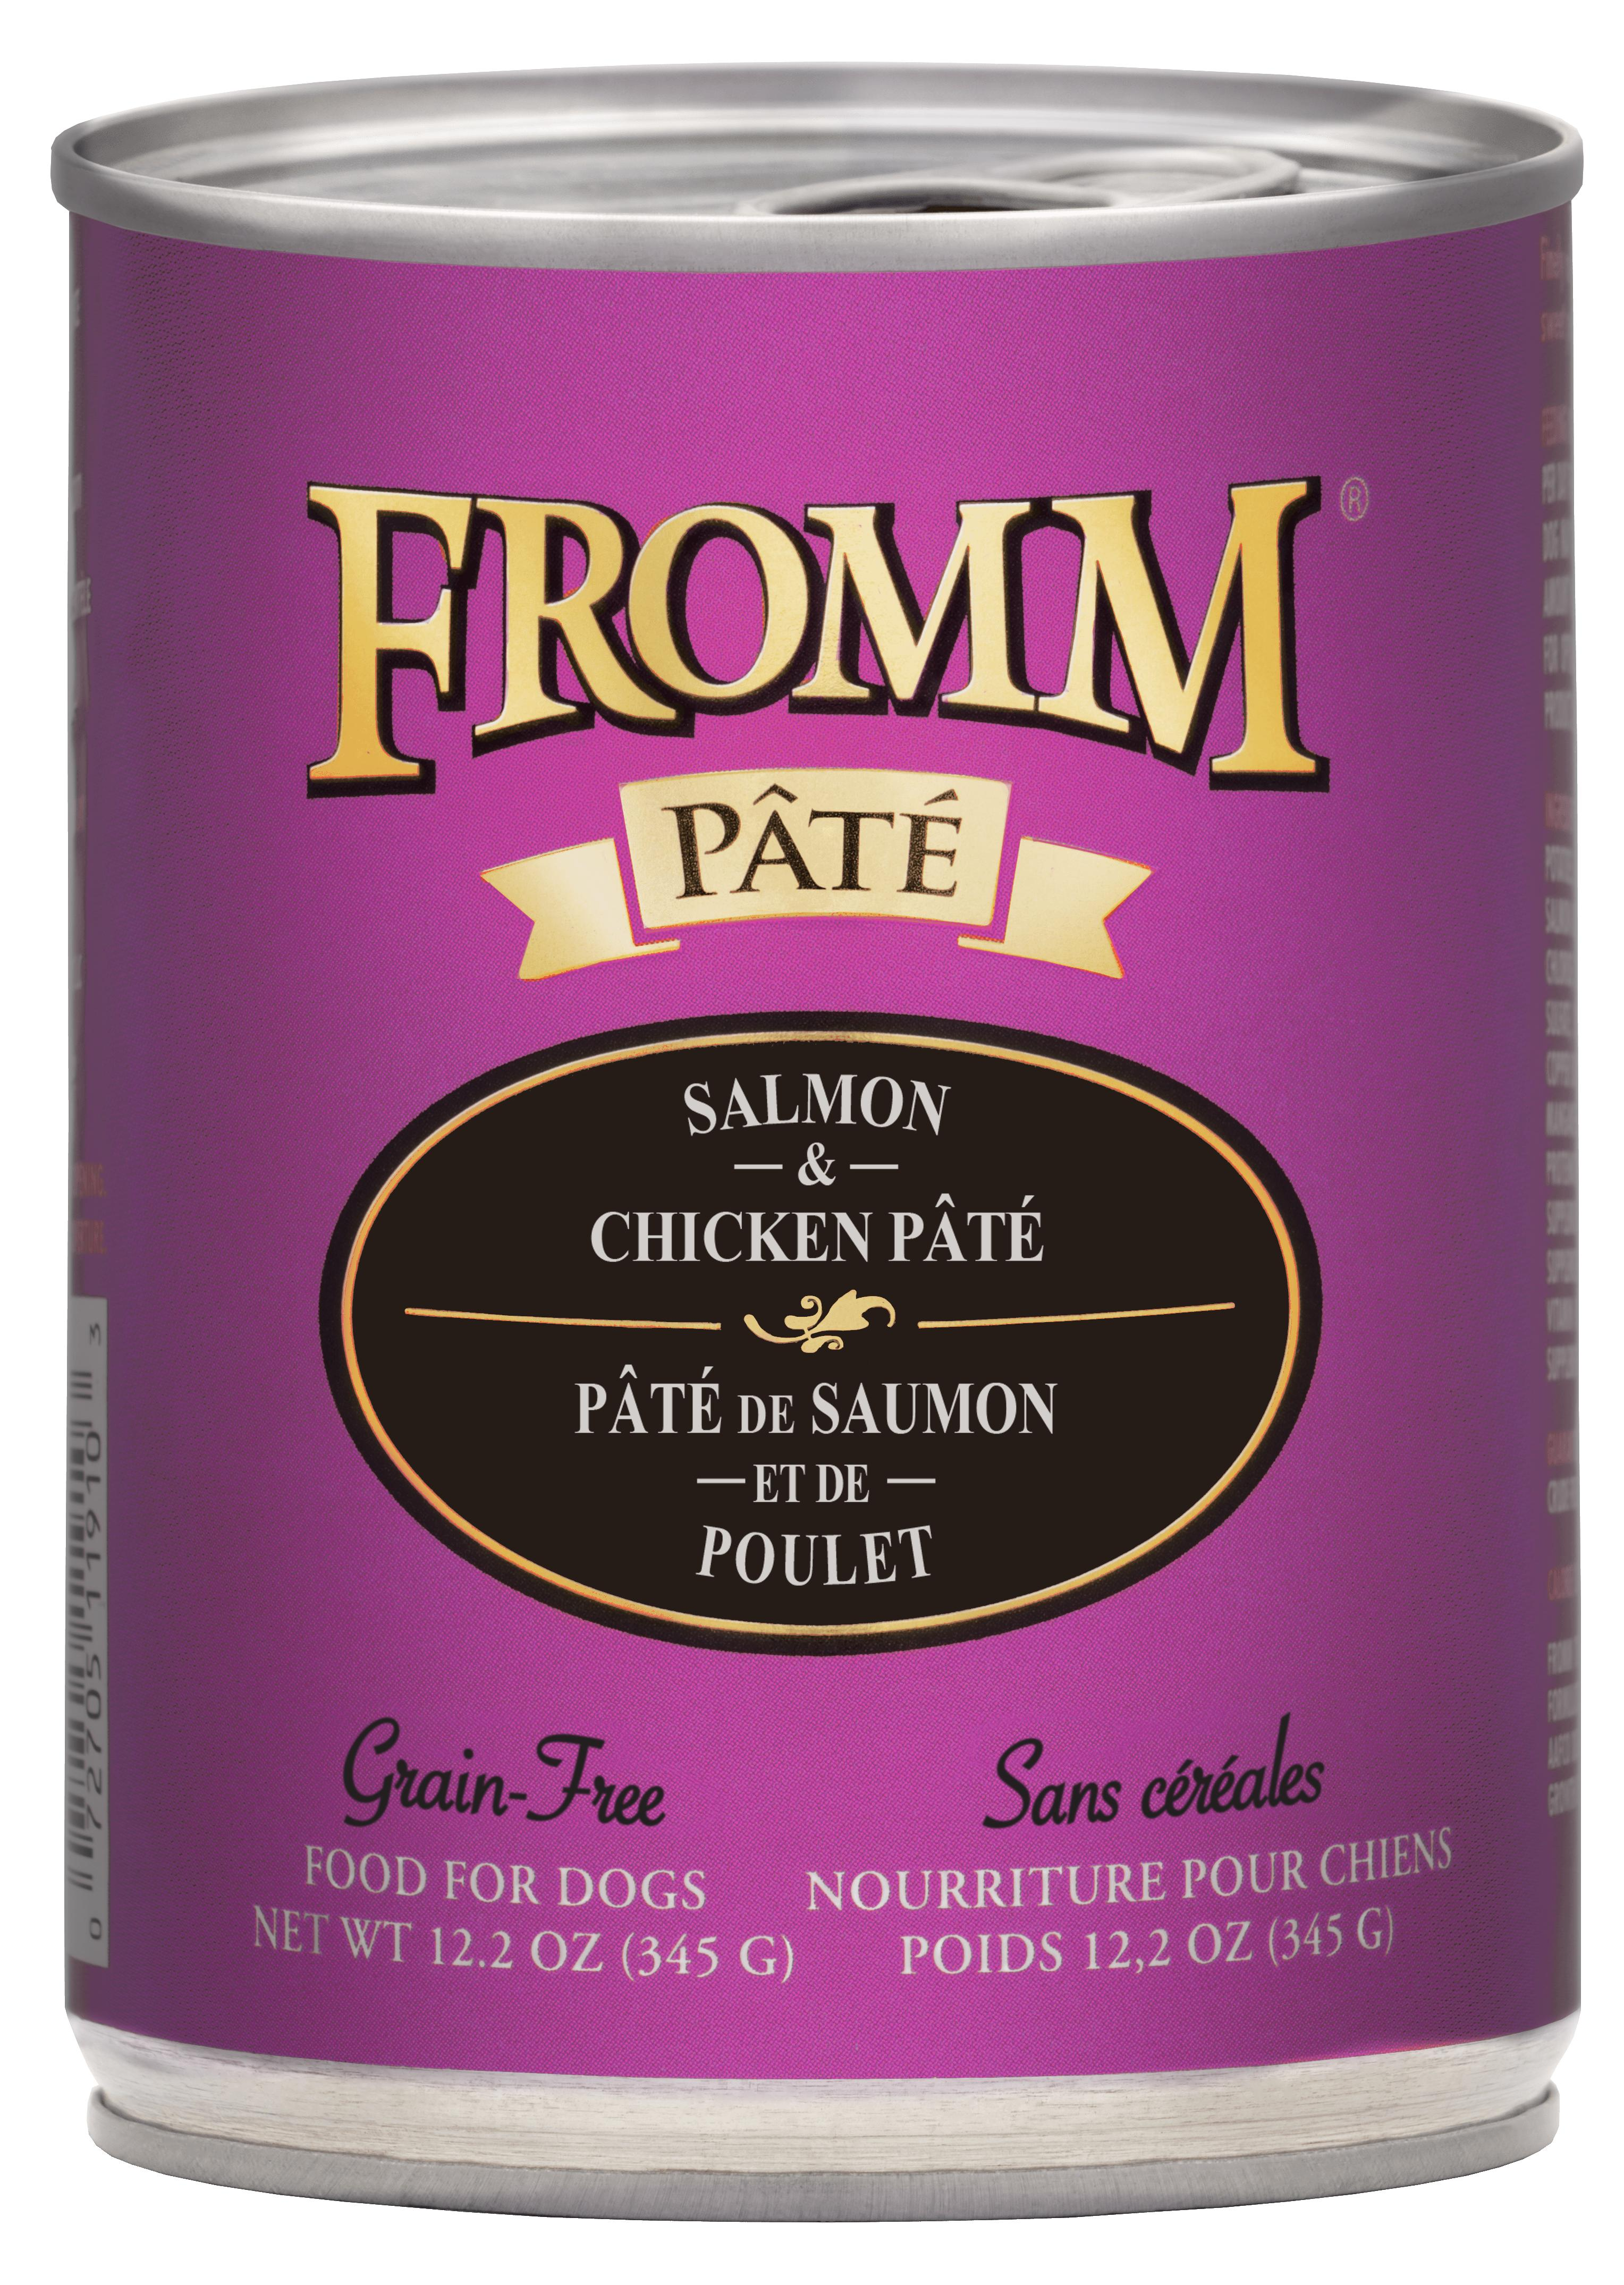 Fromm Salmon & Chicken Pate Canned Dog Food, 12.2-oz Size: 12.2-oz